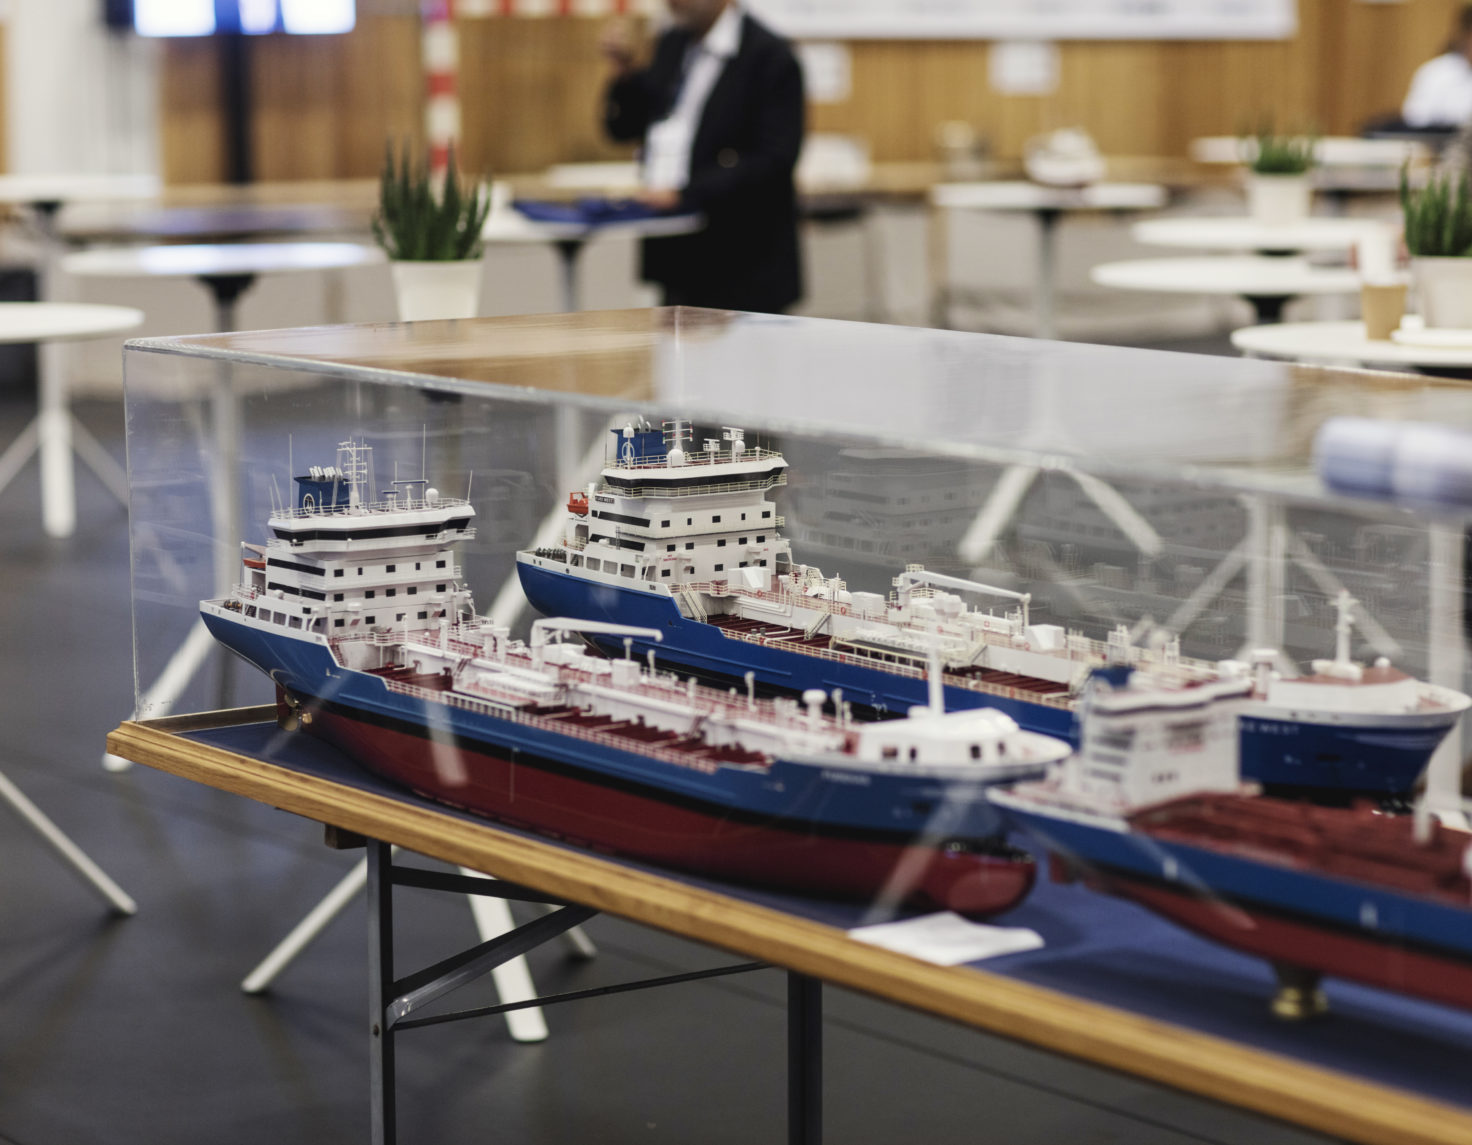 Model of a ship